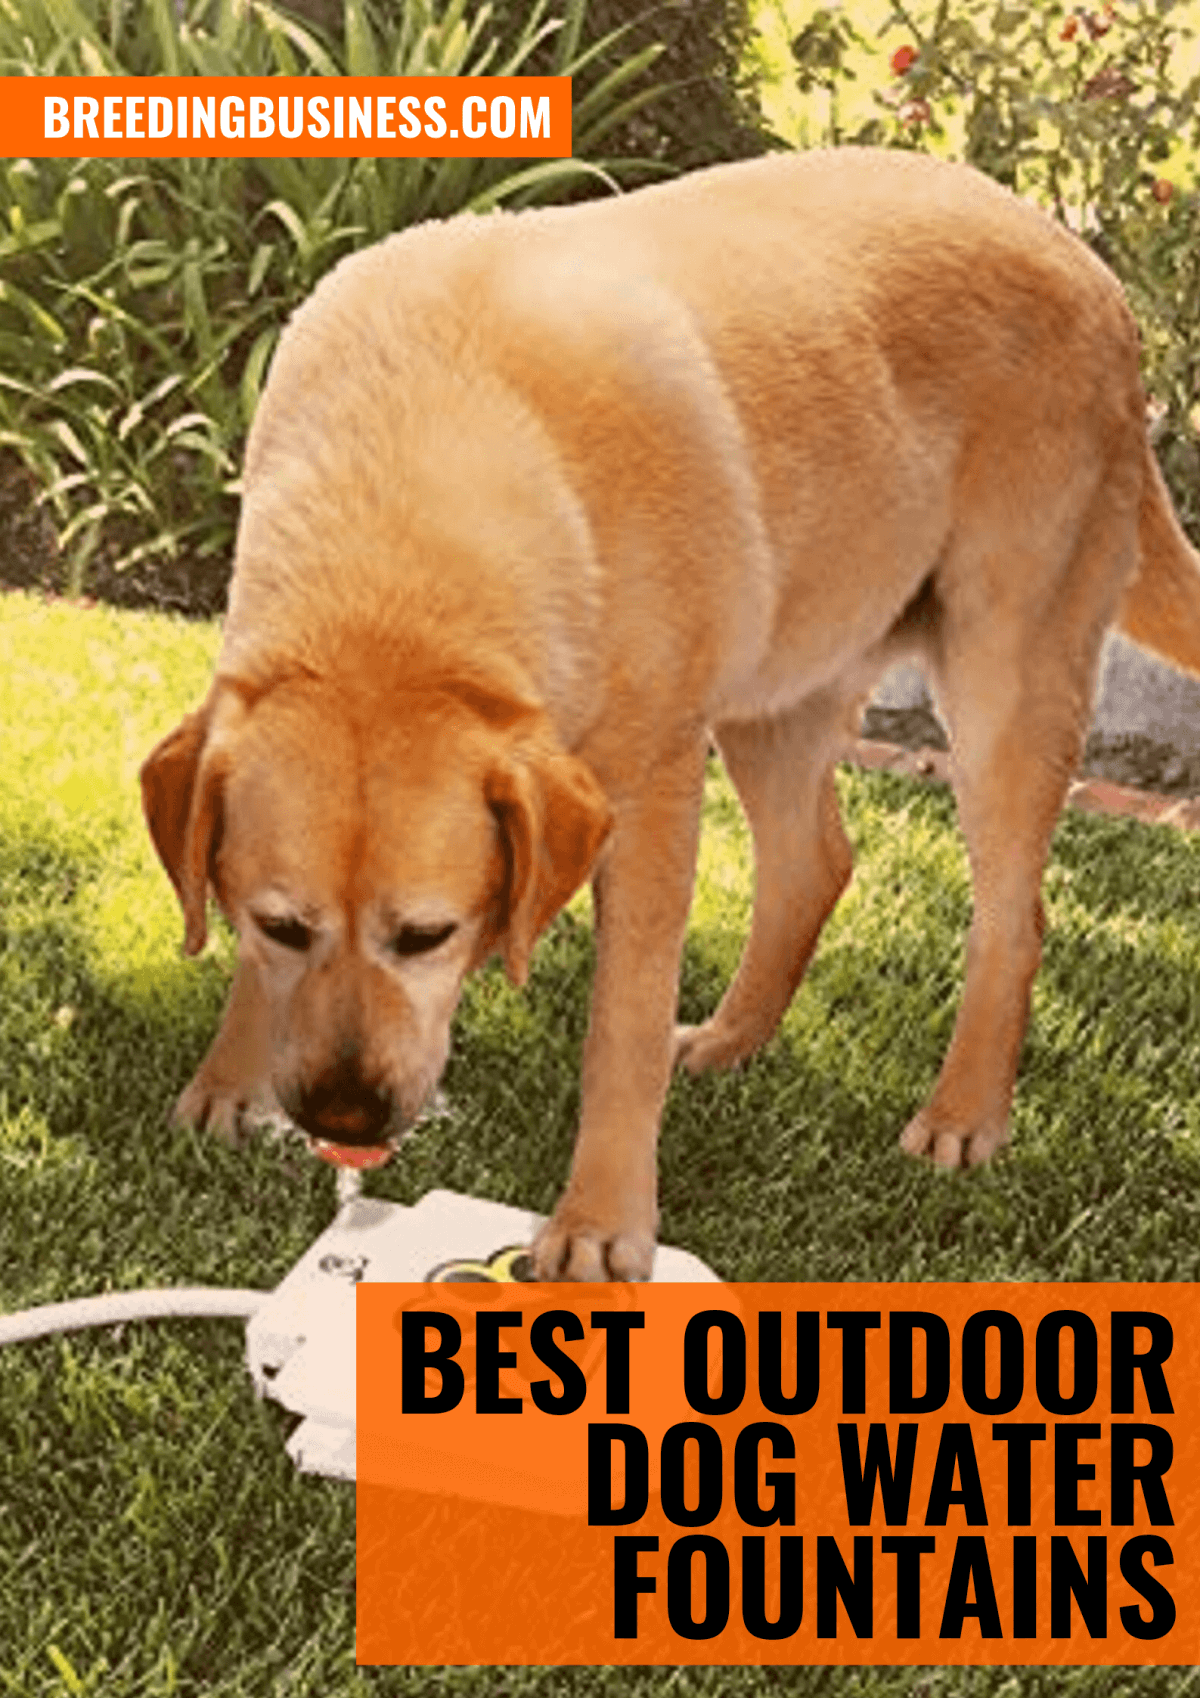 Top Outdoor Dog Water Fountains